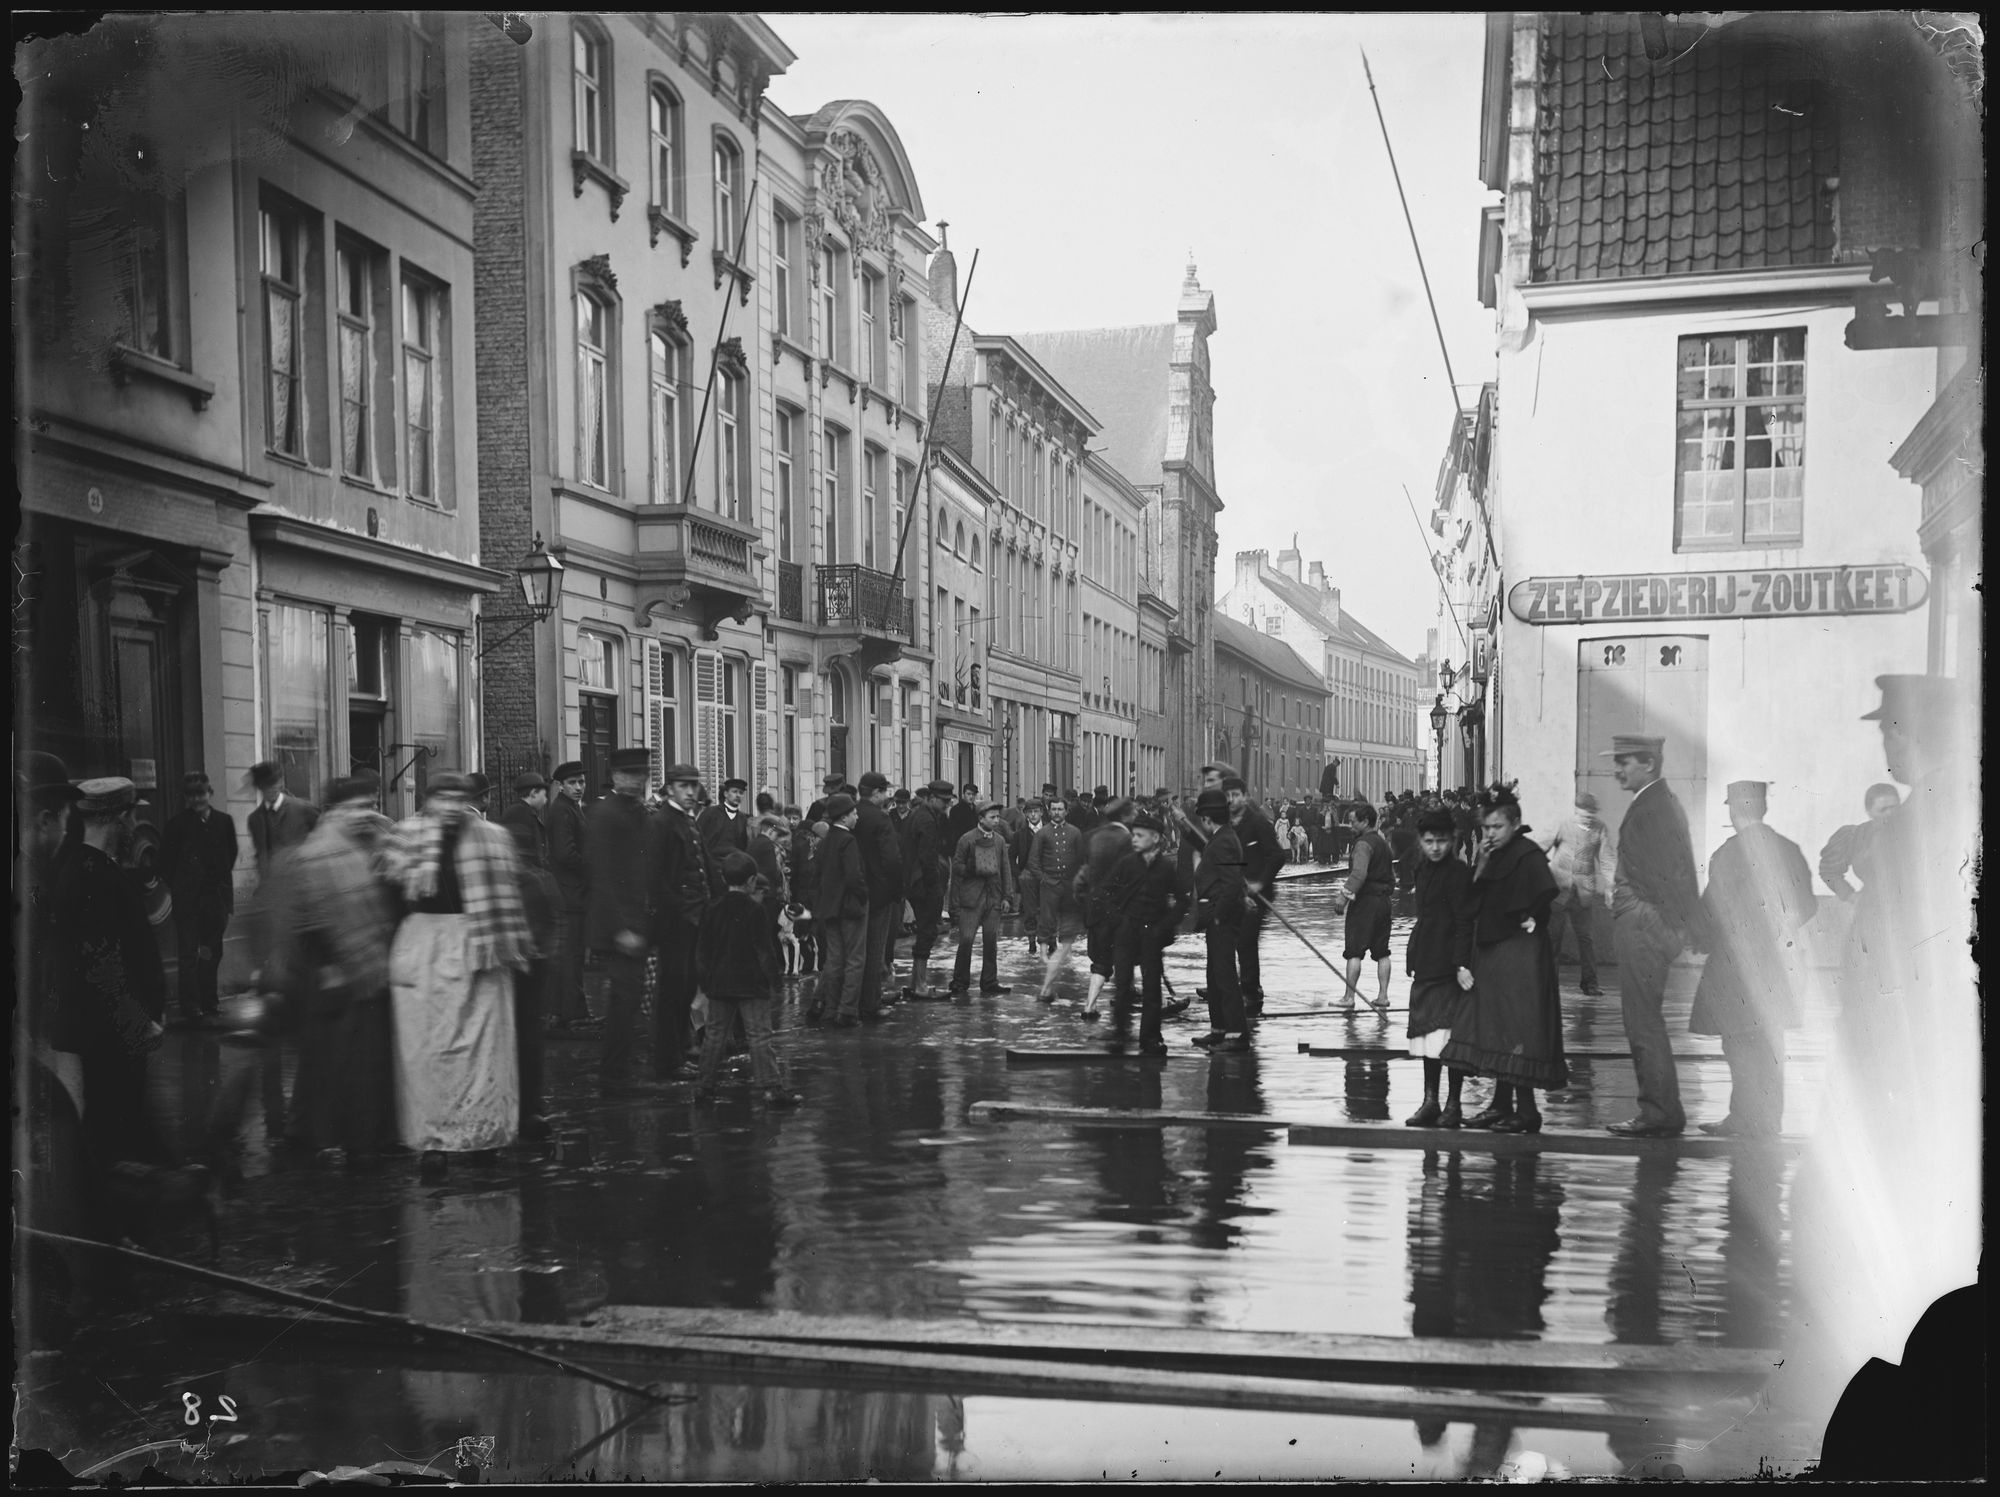 Budastraat in 1894